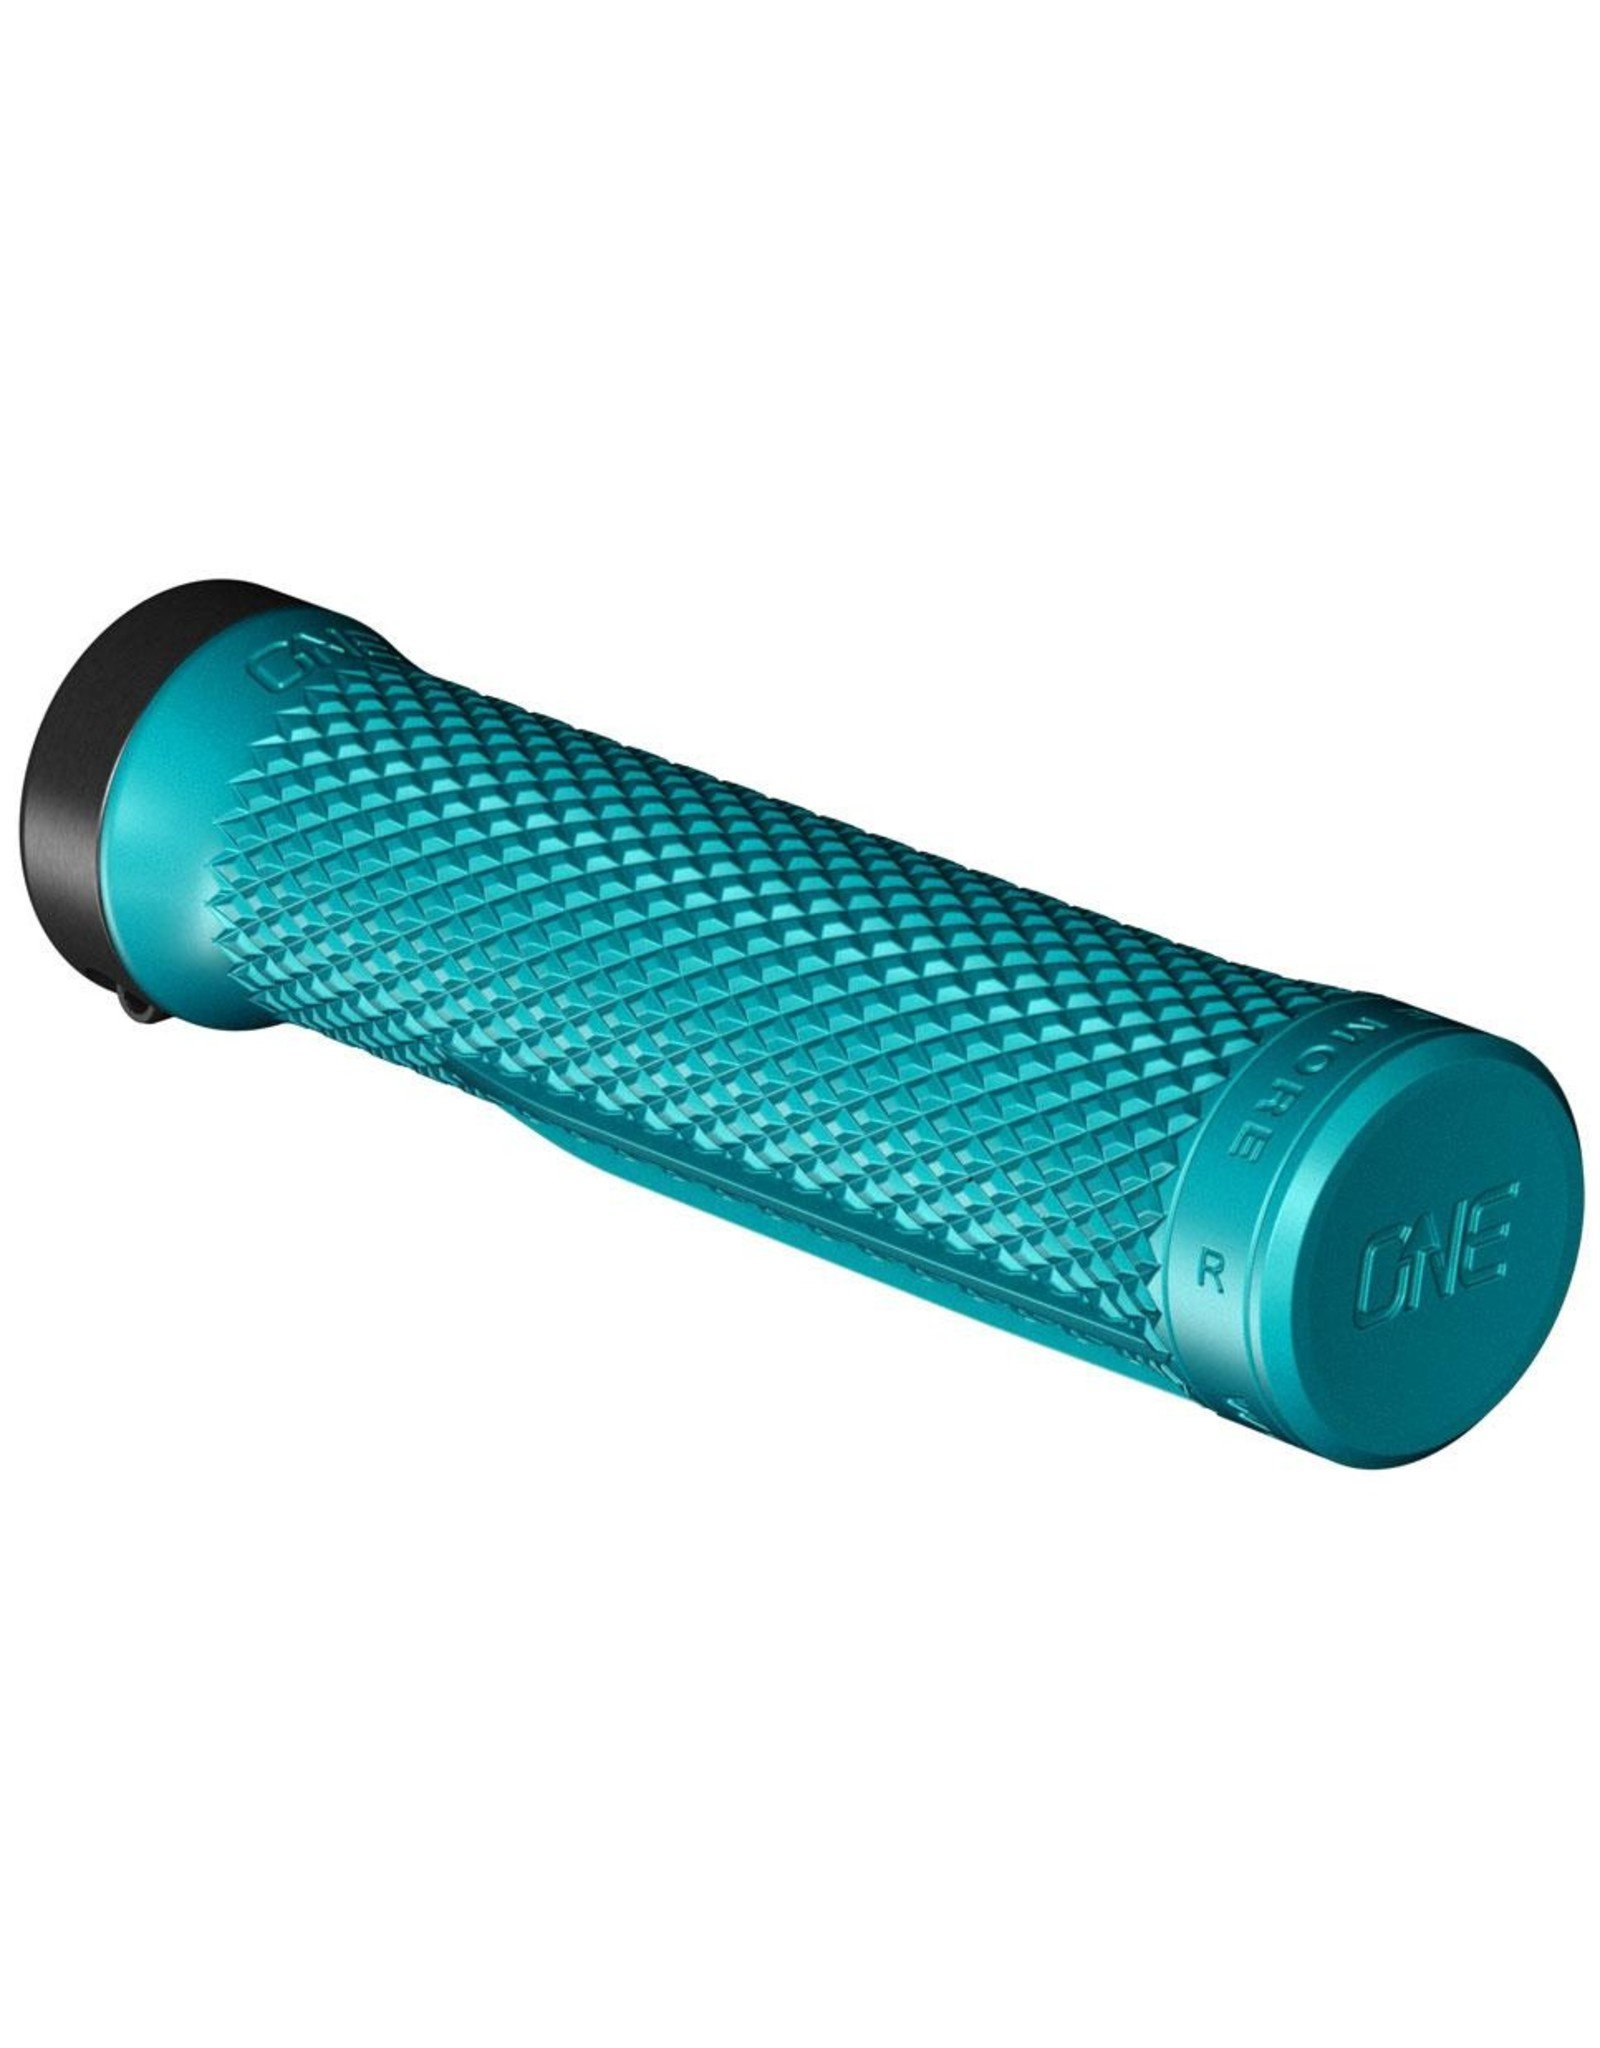 OneUp Components OneUp Components Lock-On Grips, Turquoise